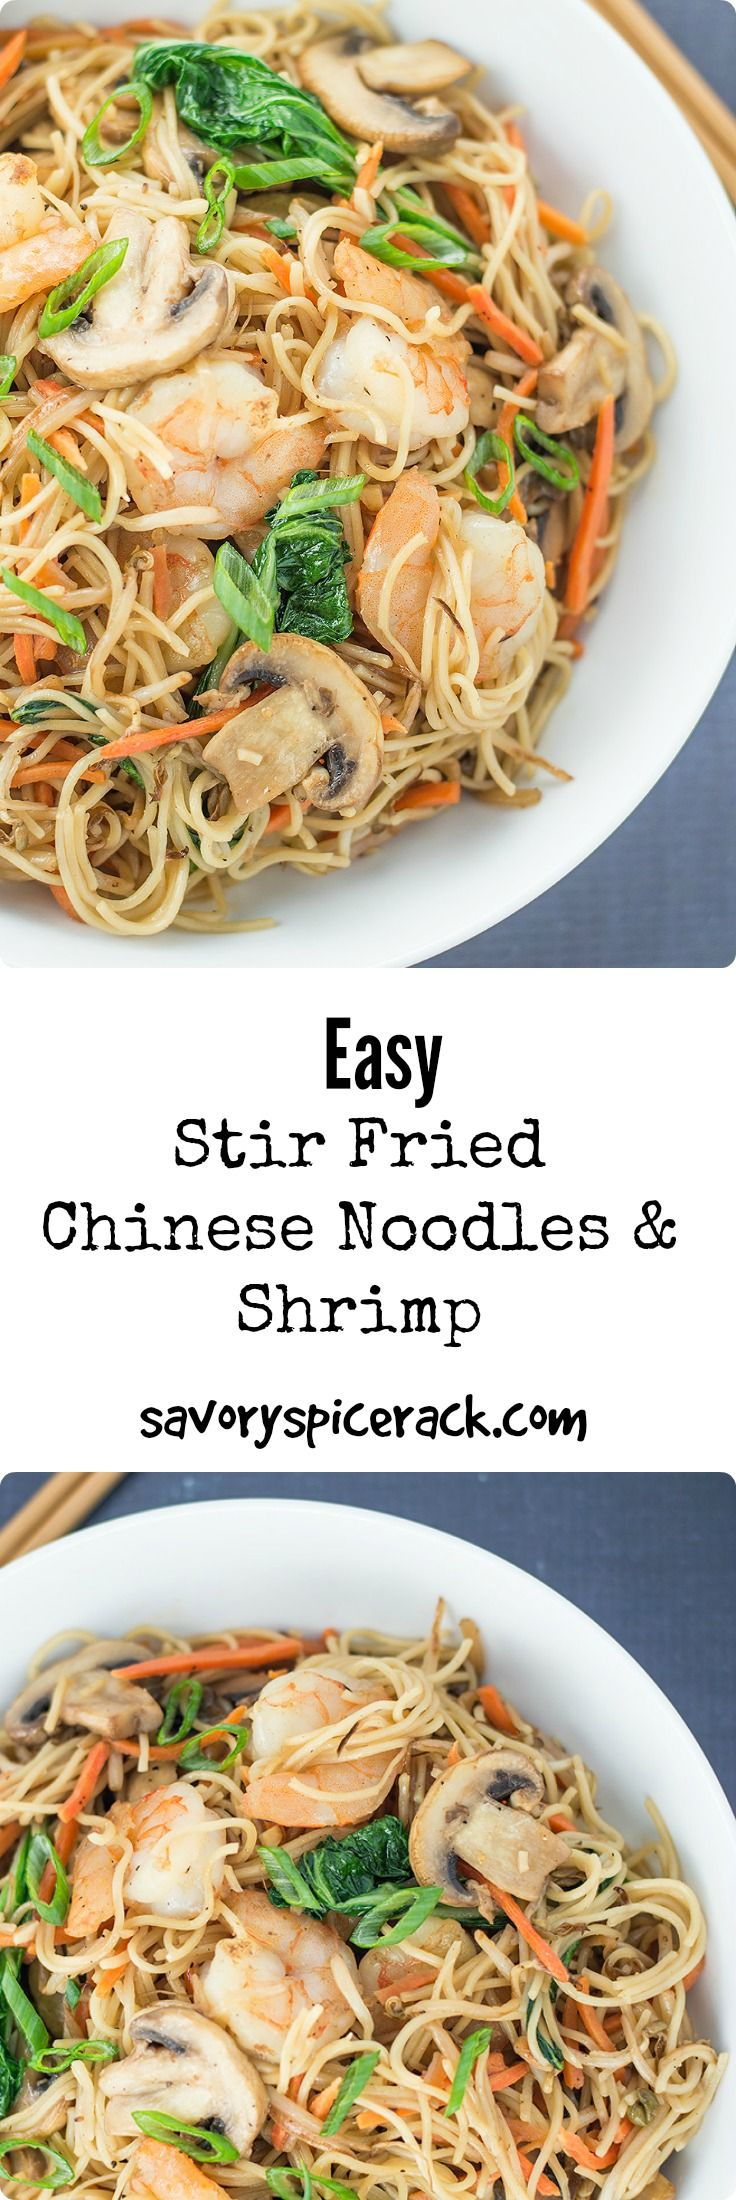 Stir Fry on Pinterest | Stir Fry, Chinese Stir Fry Sauce and Chinese ...